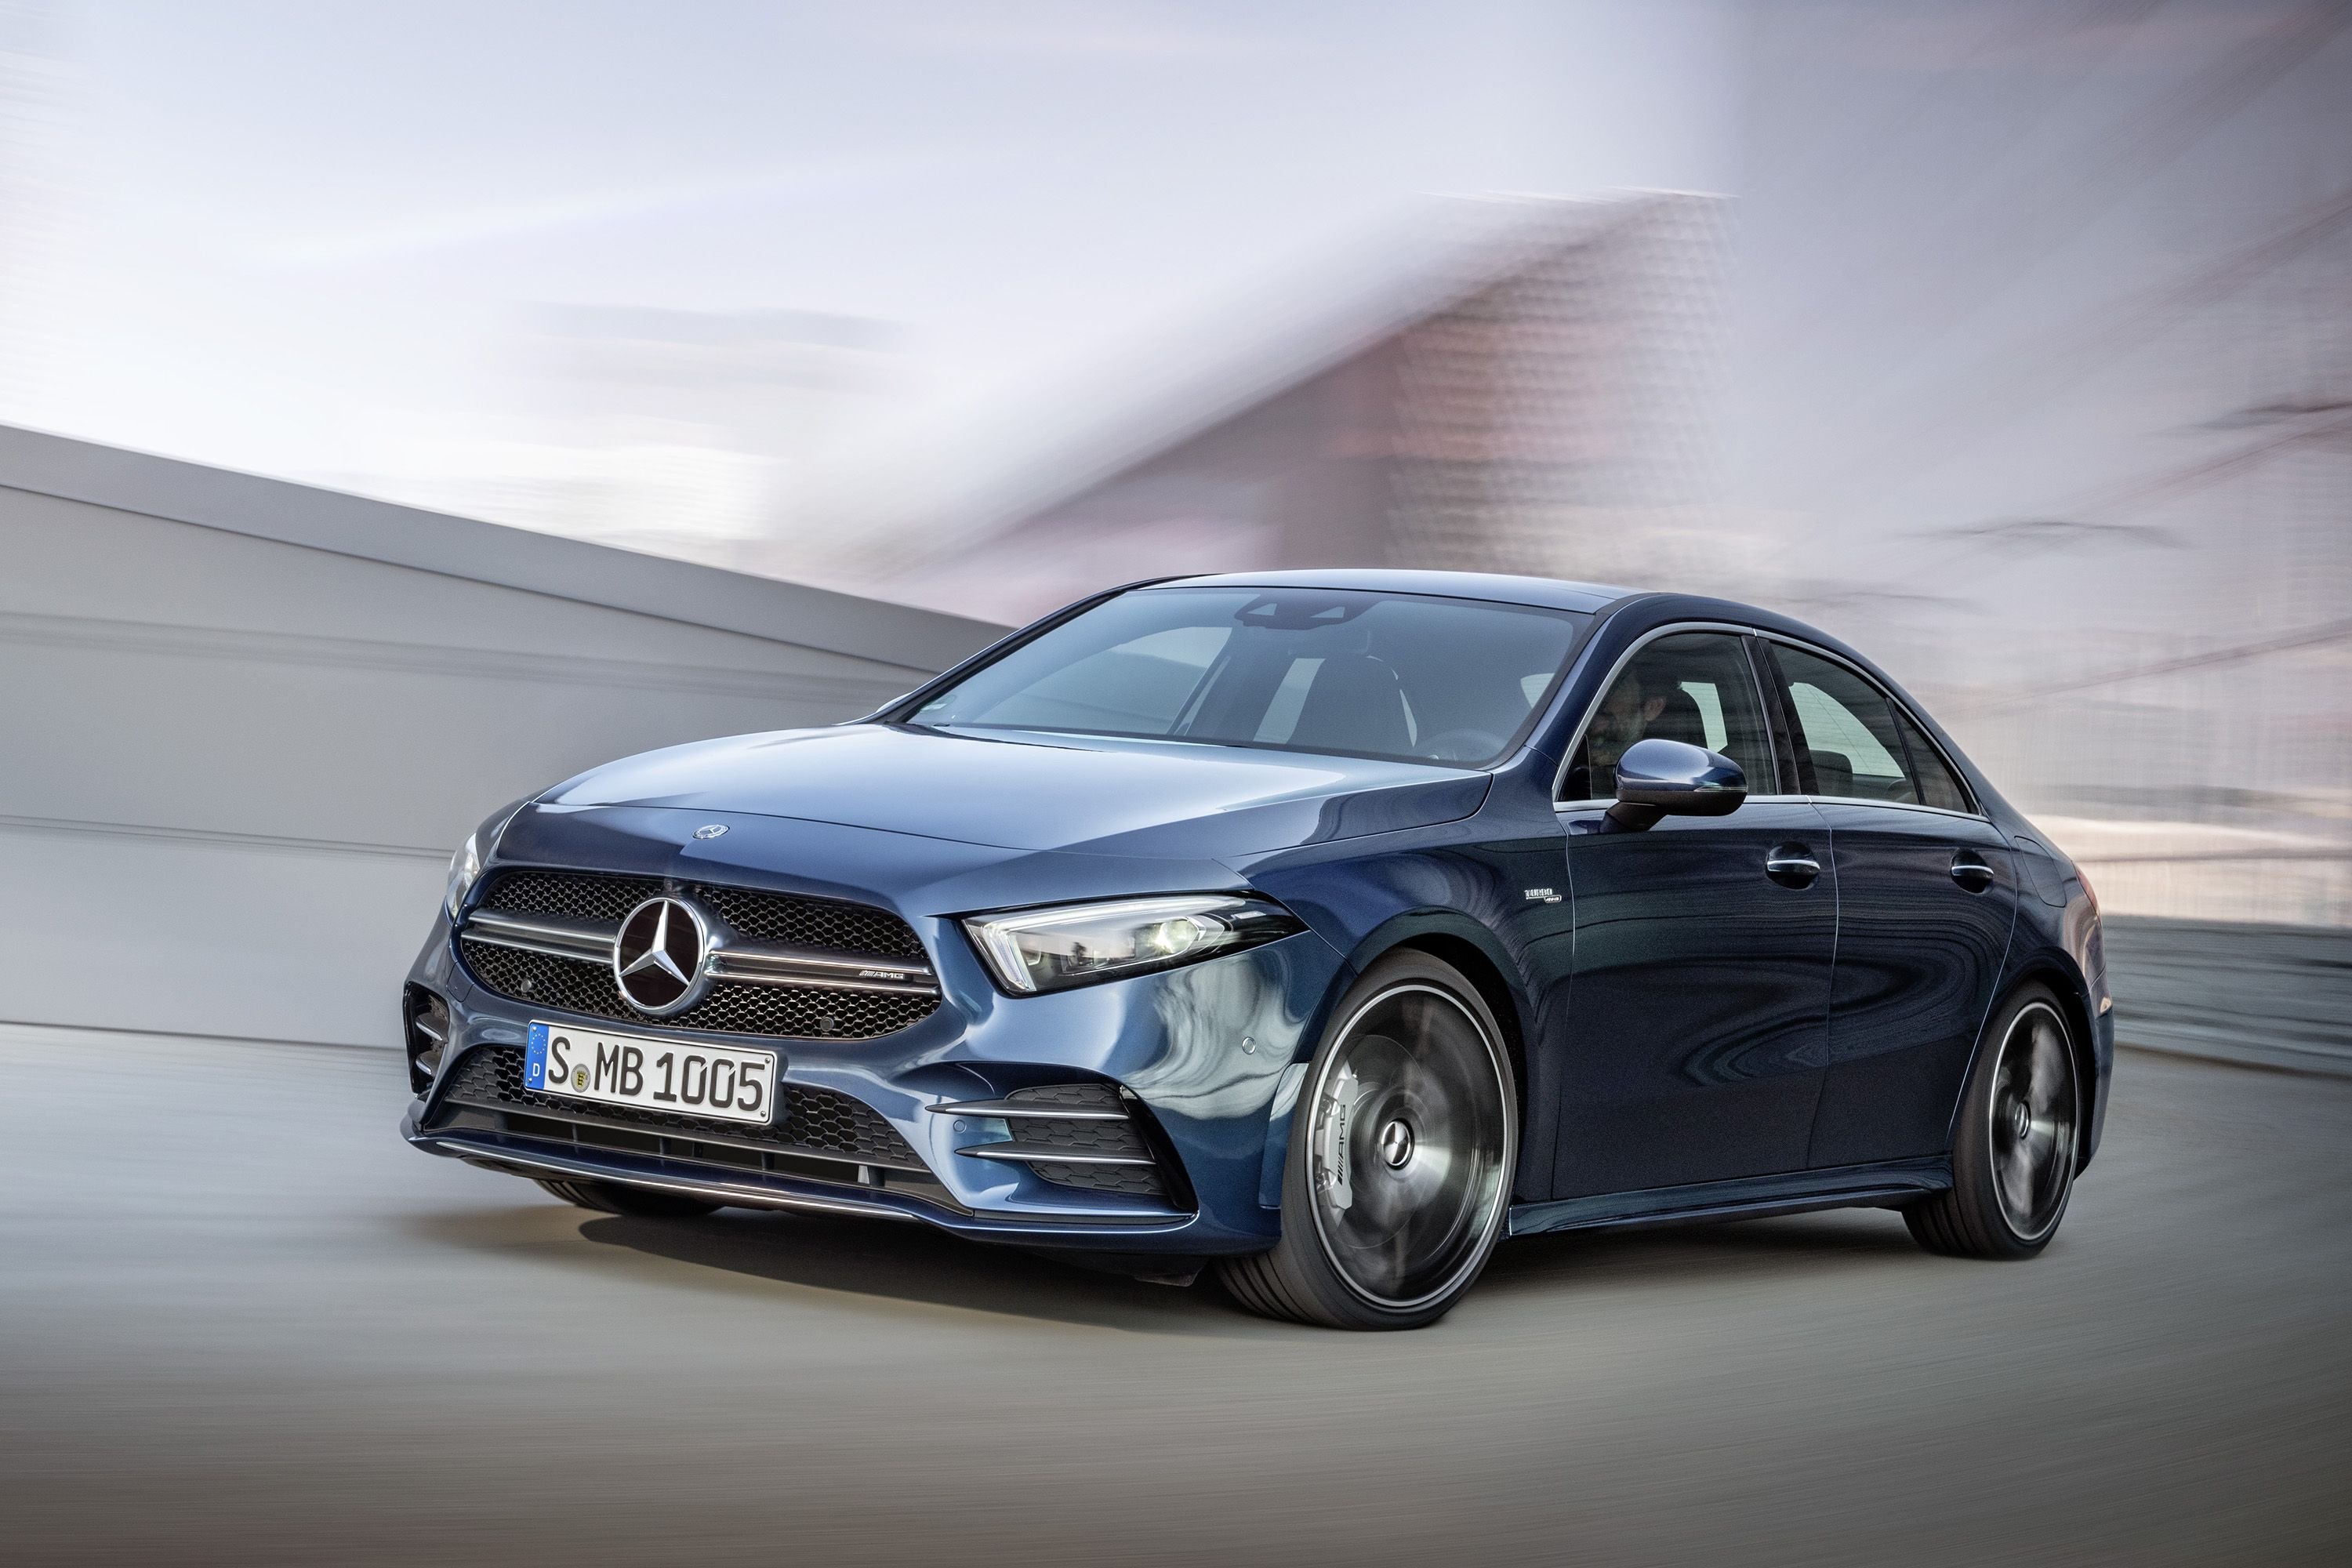 2020 Mercedes-AMG A35 Debuts as America's New Entry-Level AMG